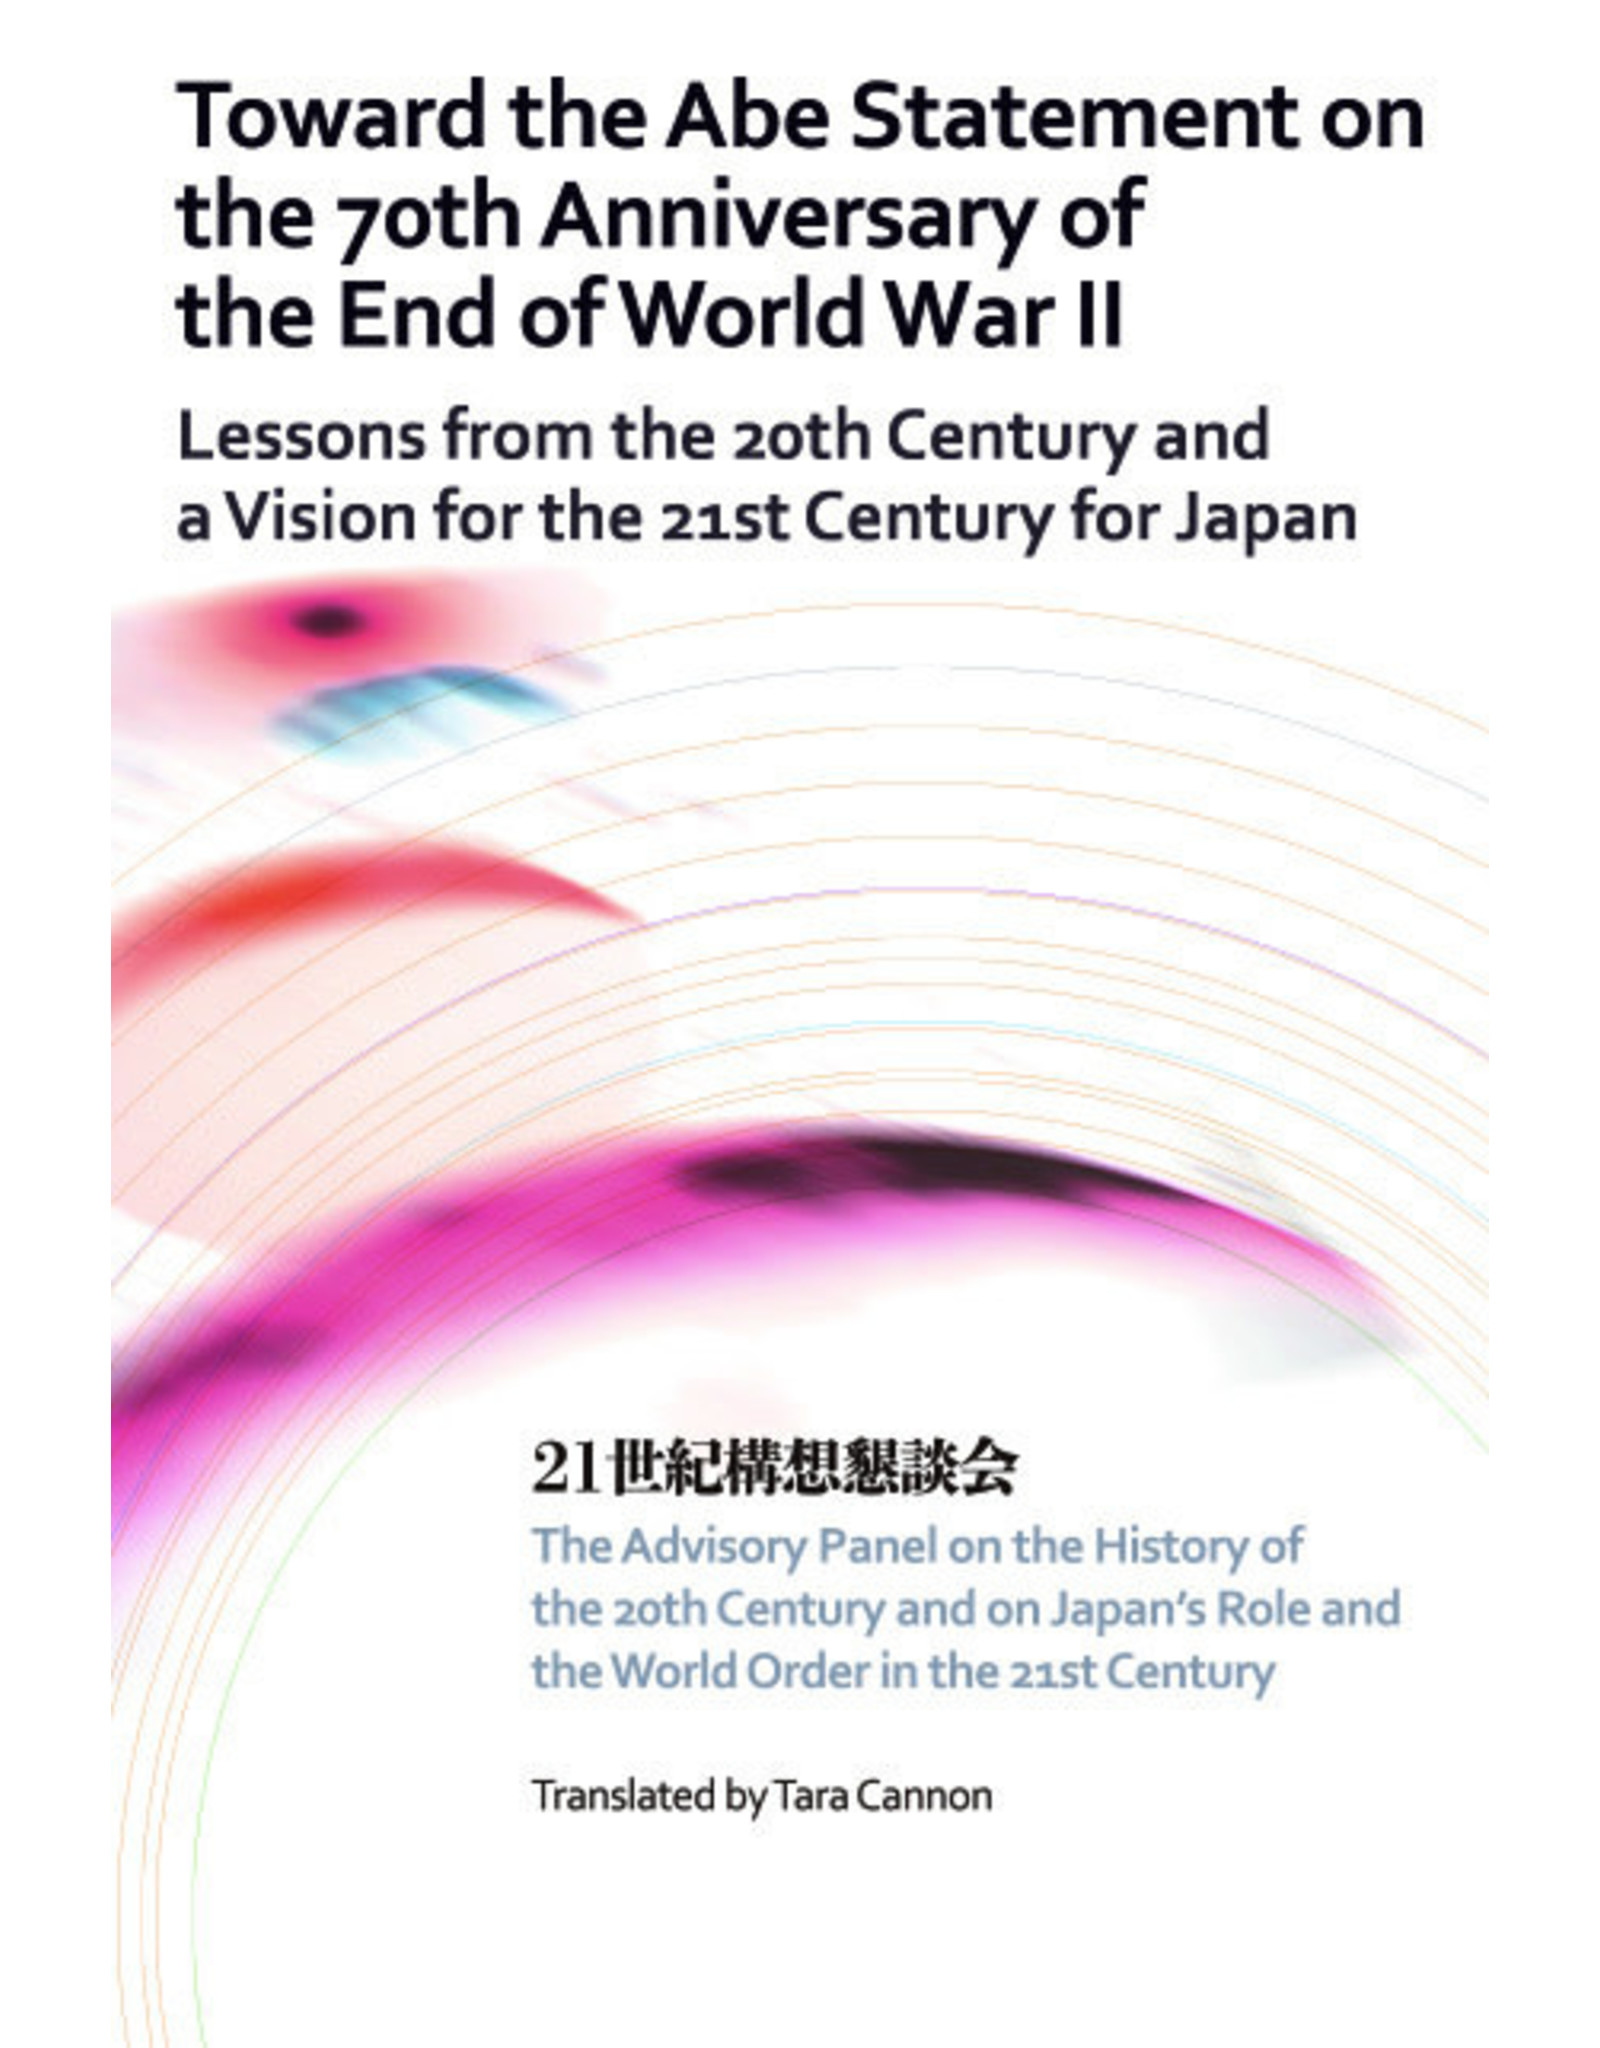 JPIC Toward the Abe Statement on the 70th anniversary of the end of World War II